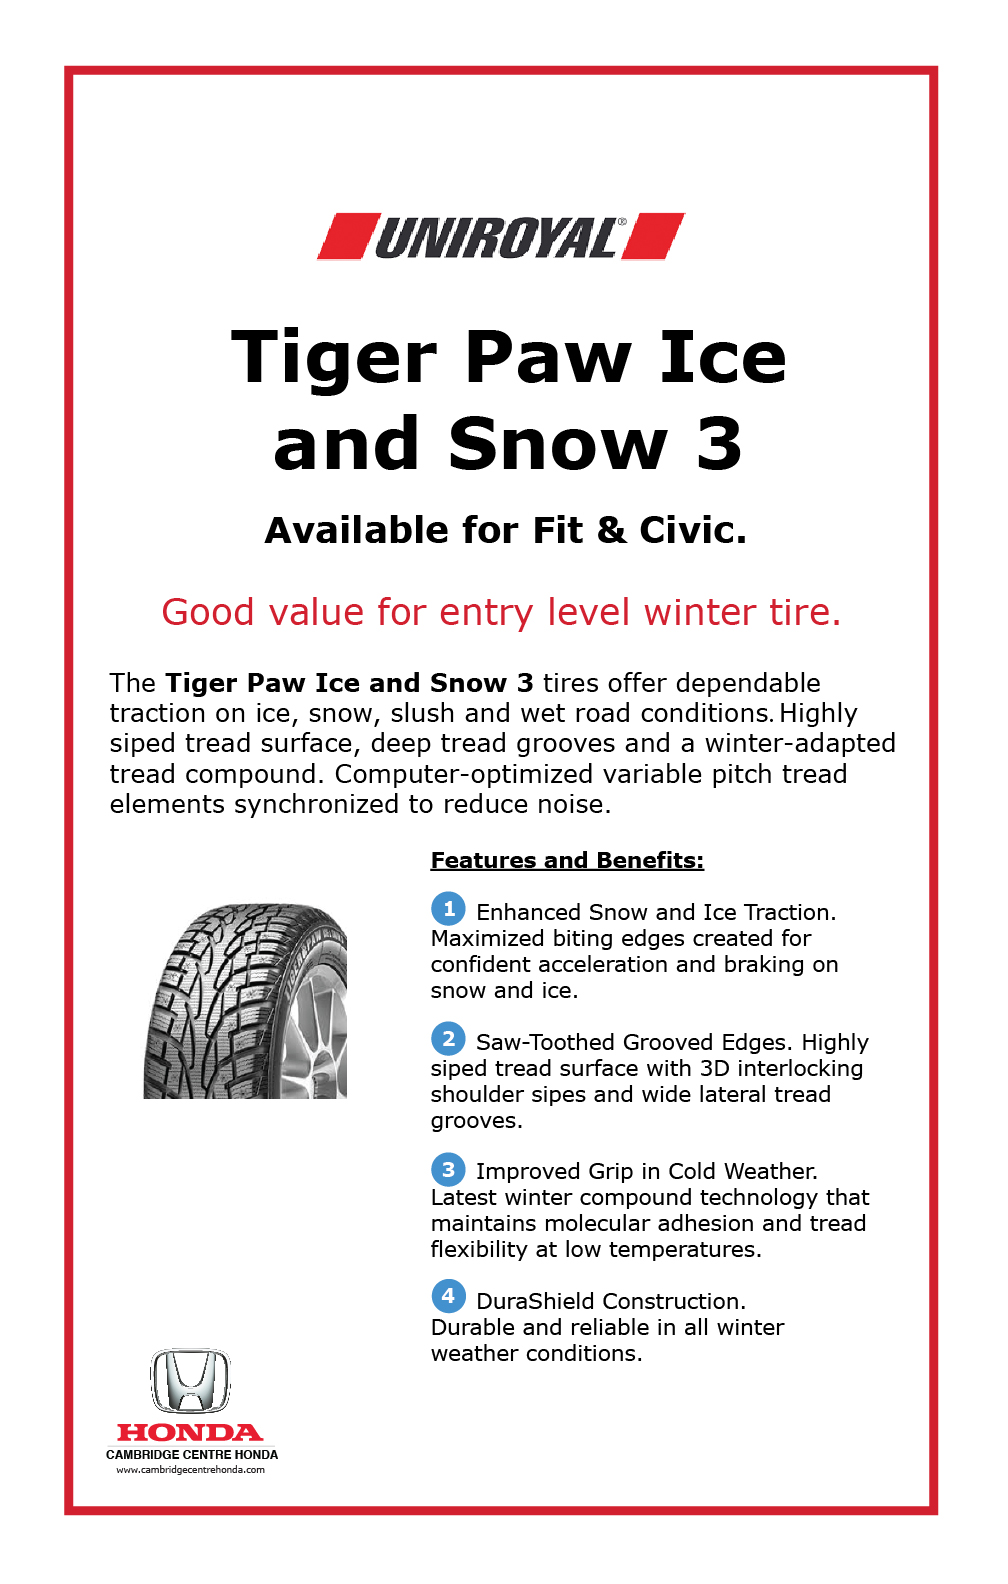 Uniroyal Tiger Paw Ice and Snow 3